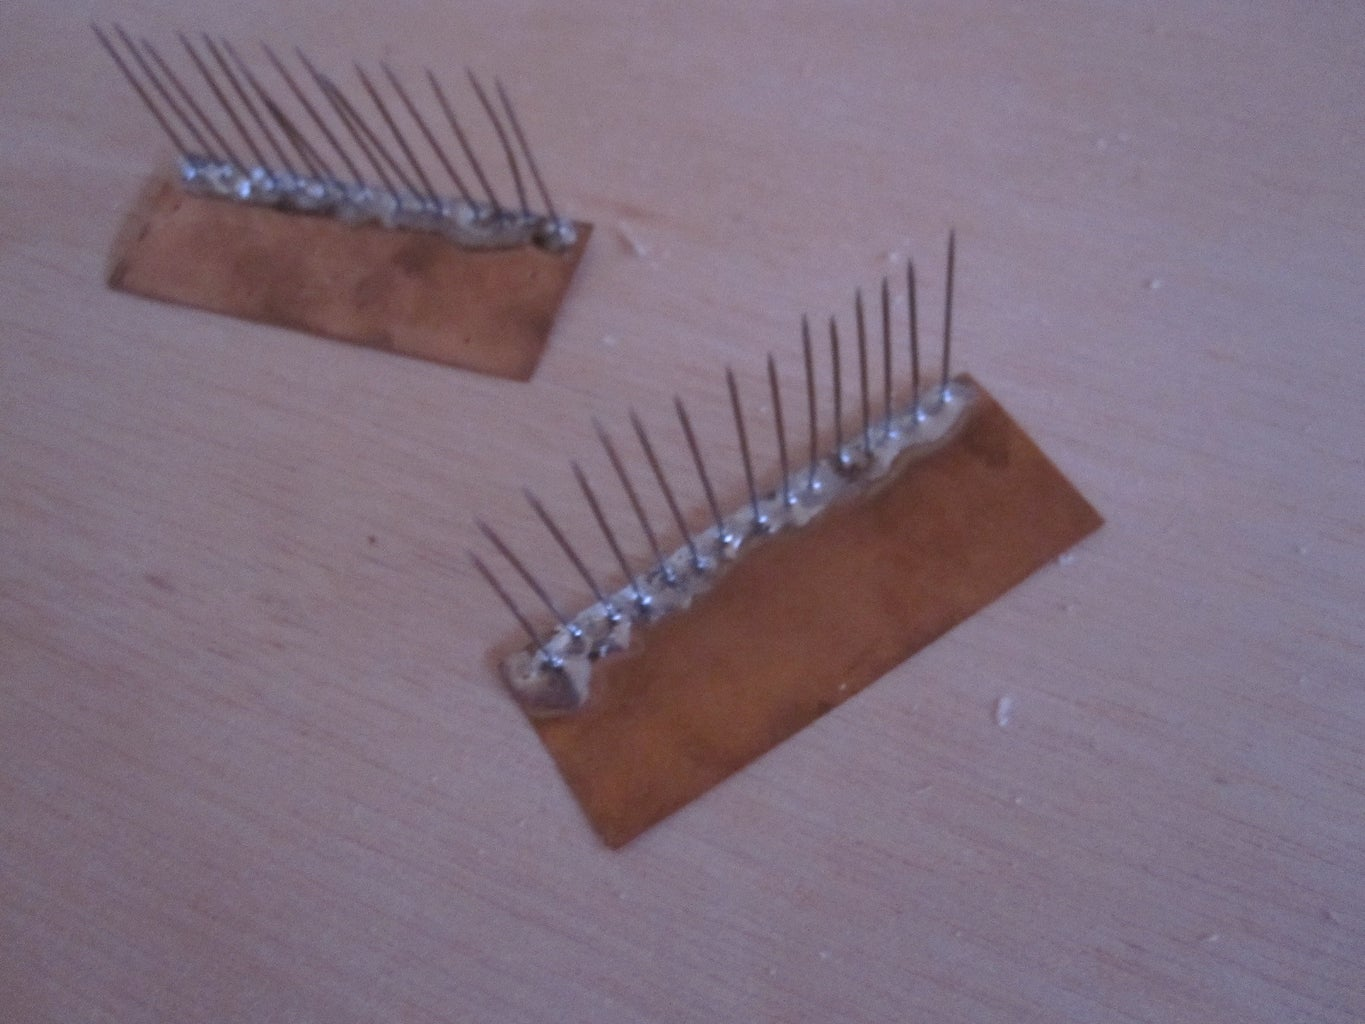 Making the Brushes